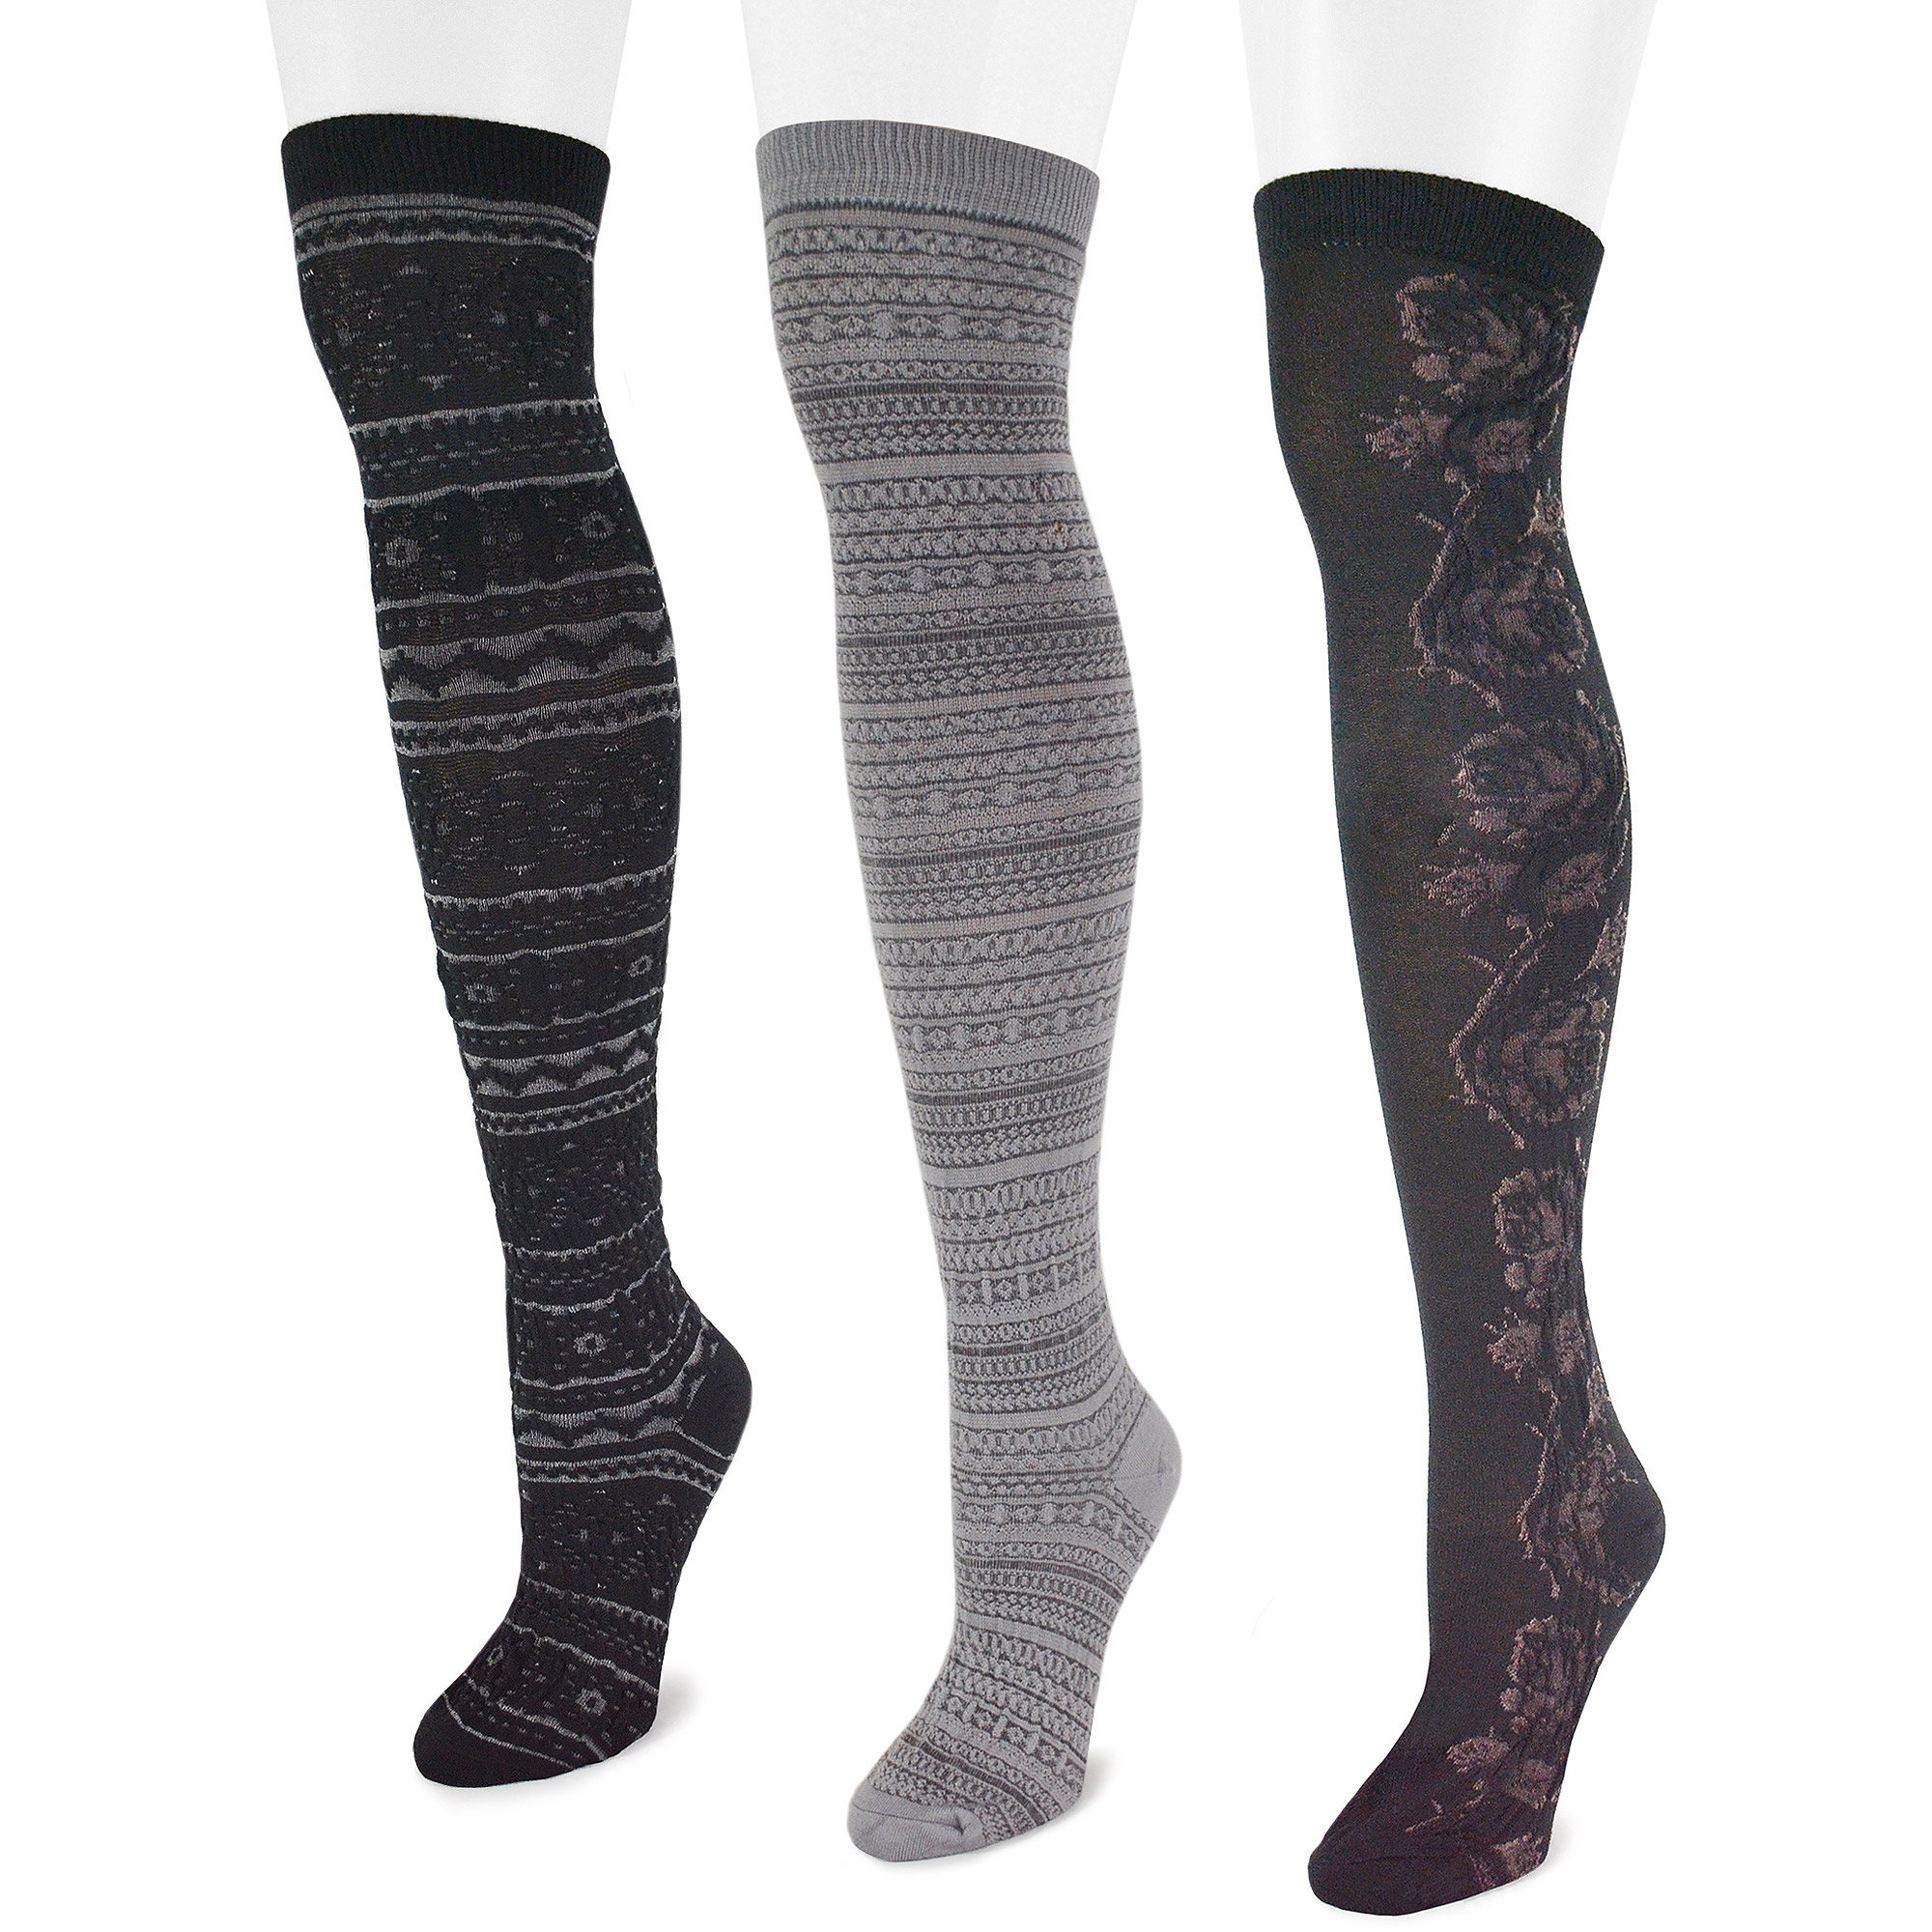 MUK LUKS Women's Microfiber 3-Pair Black Pack Over the Knee Socks